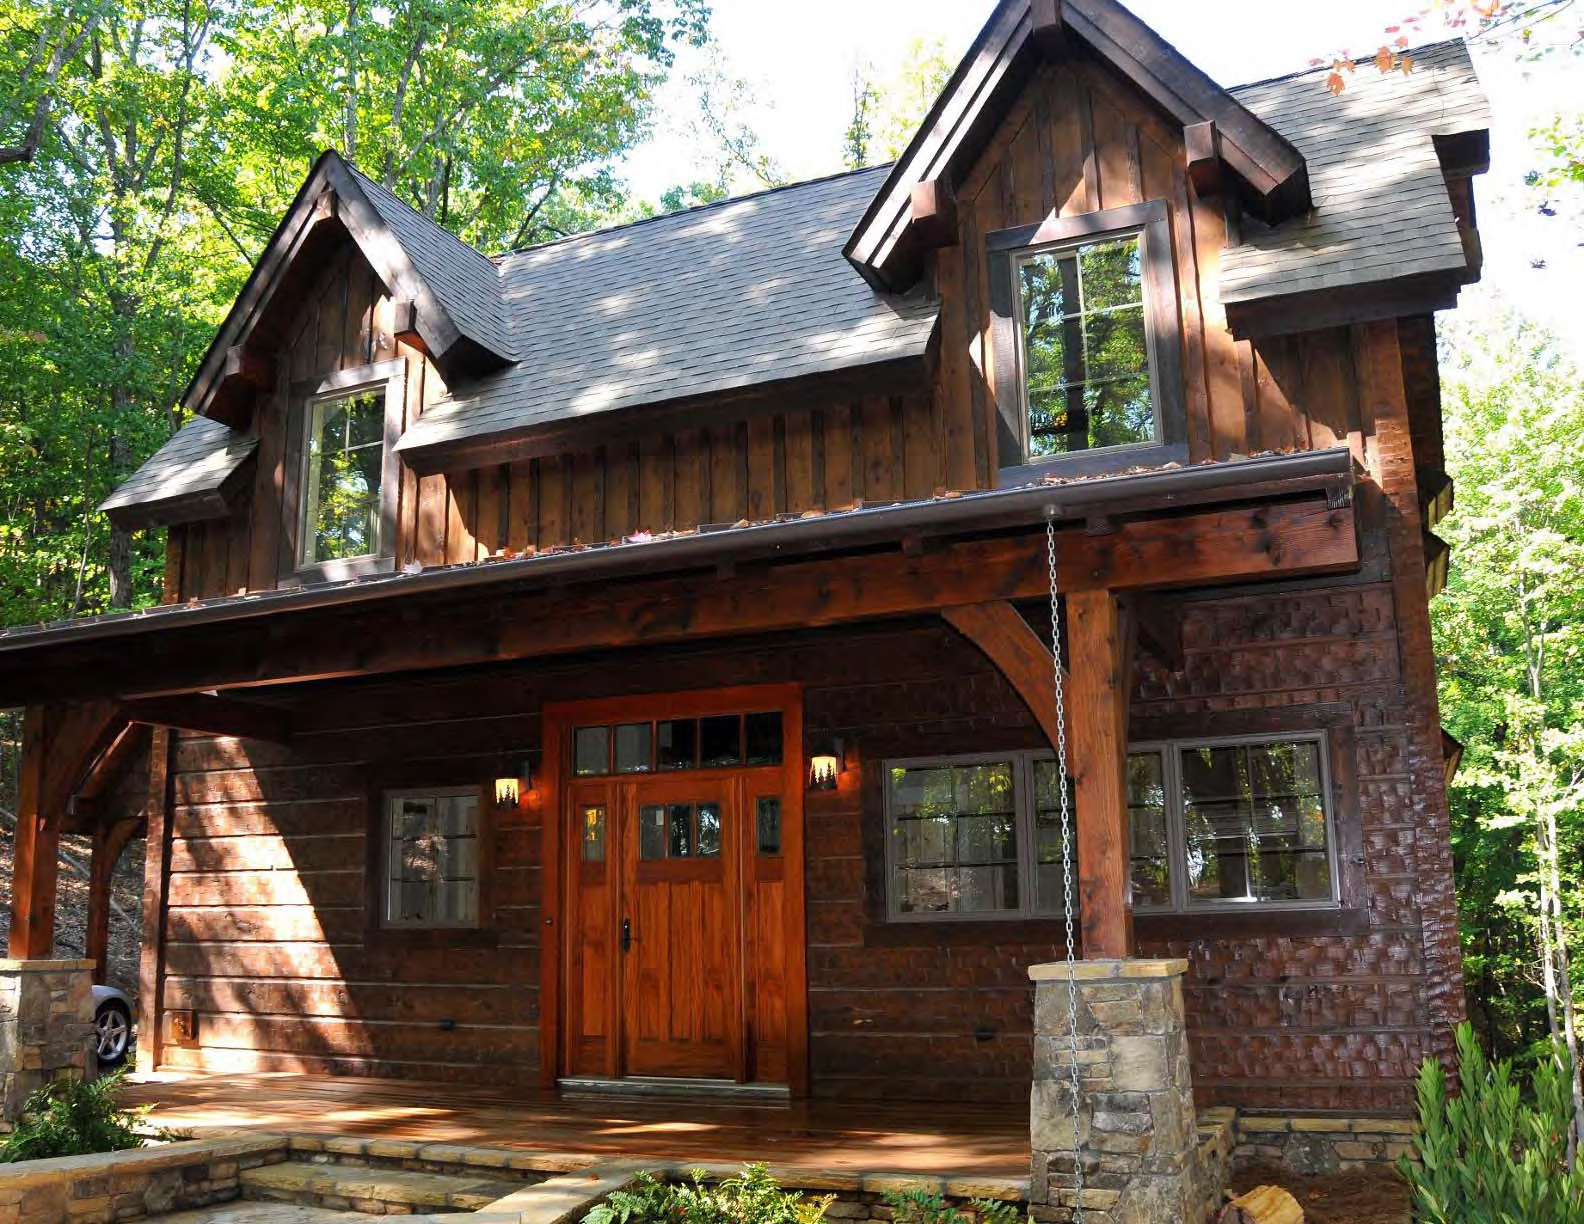 Build This Cozy Cabin Cozy Cabin Magazine Do It Yourself: Natural Element Homes